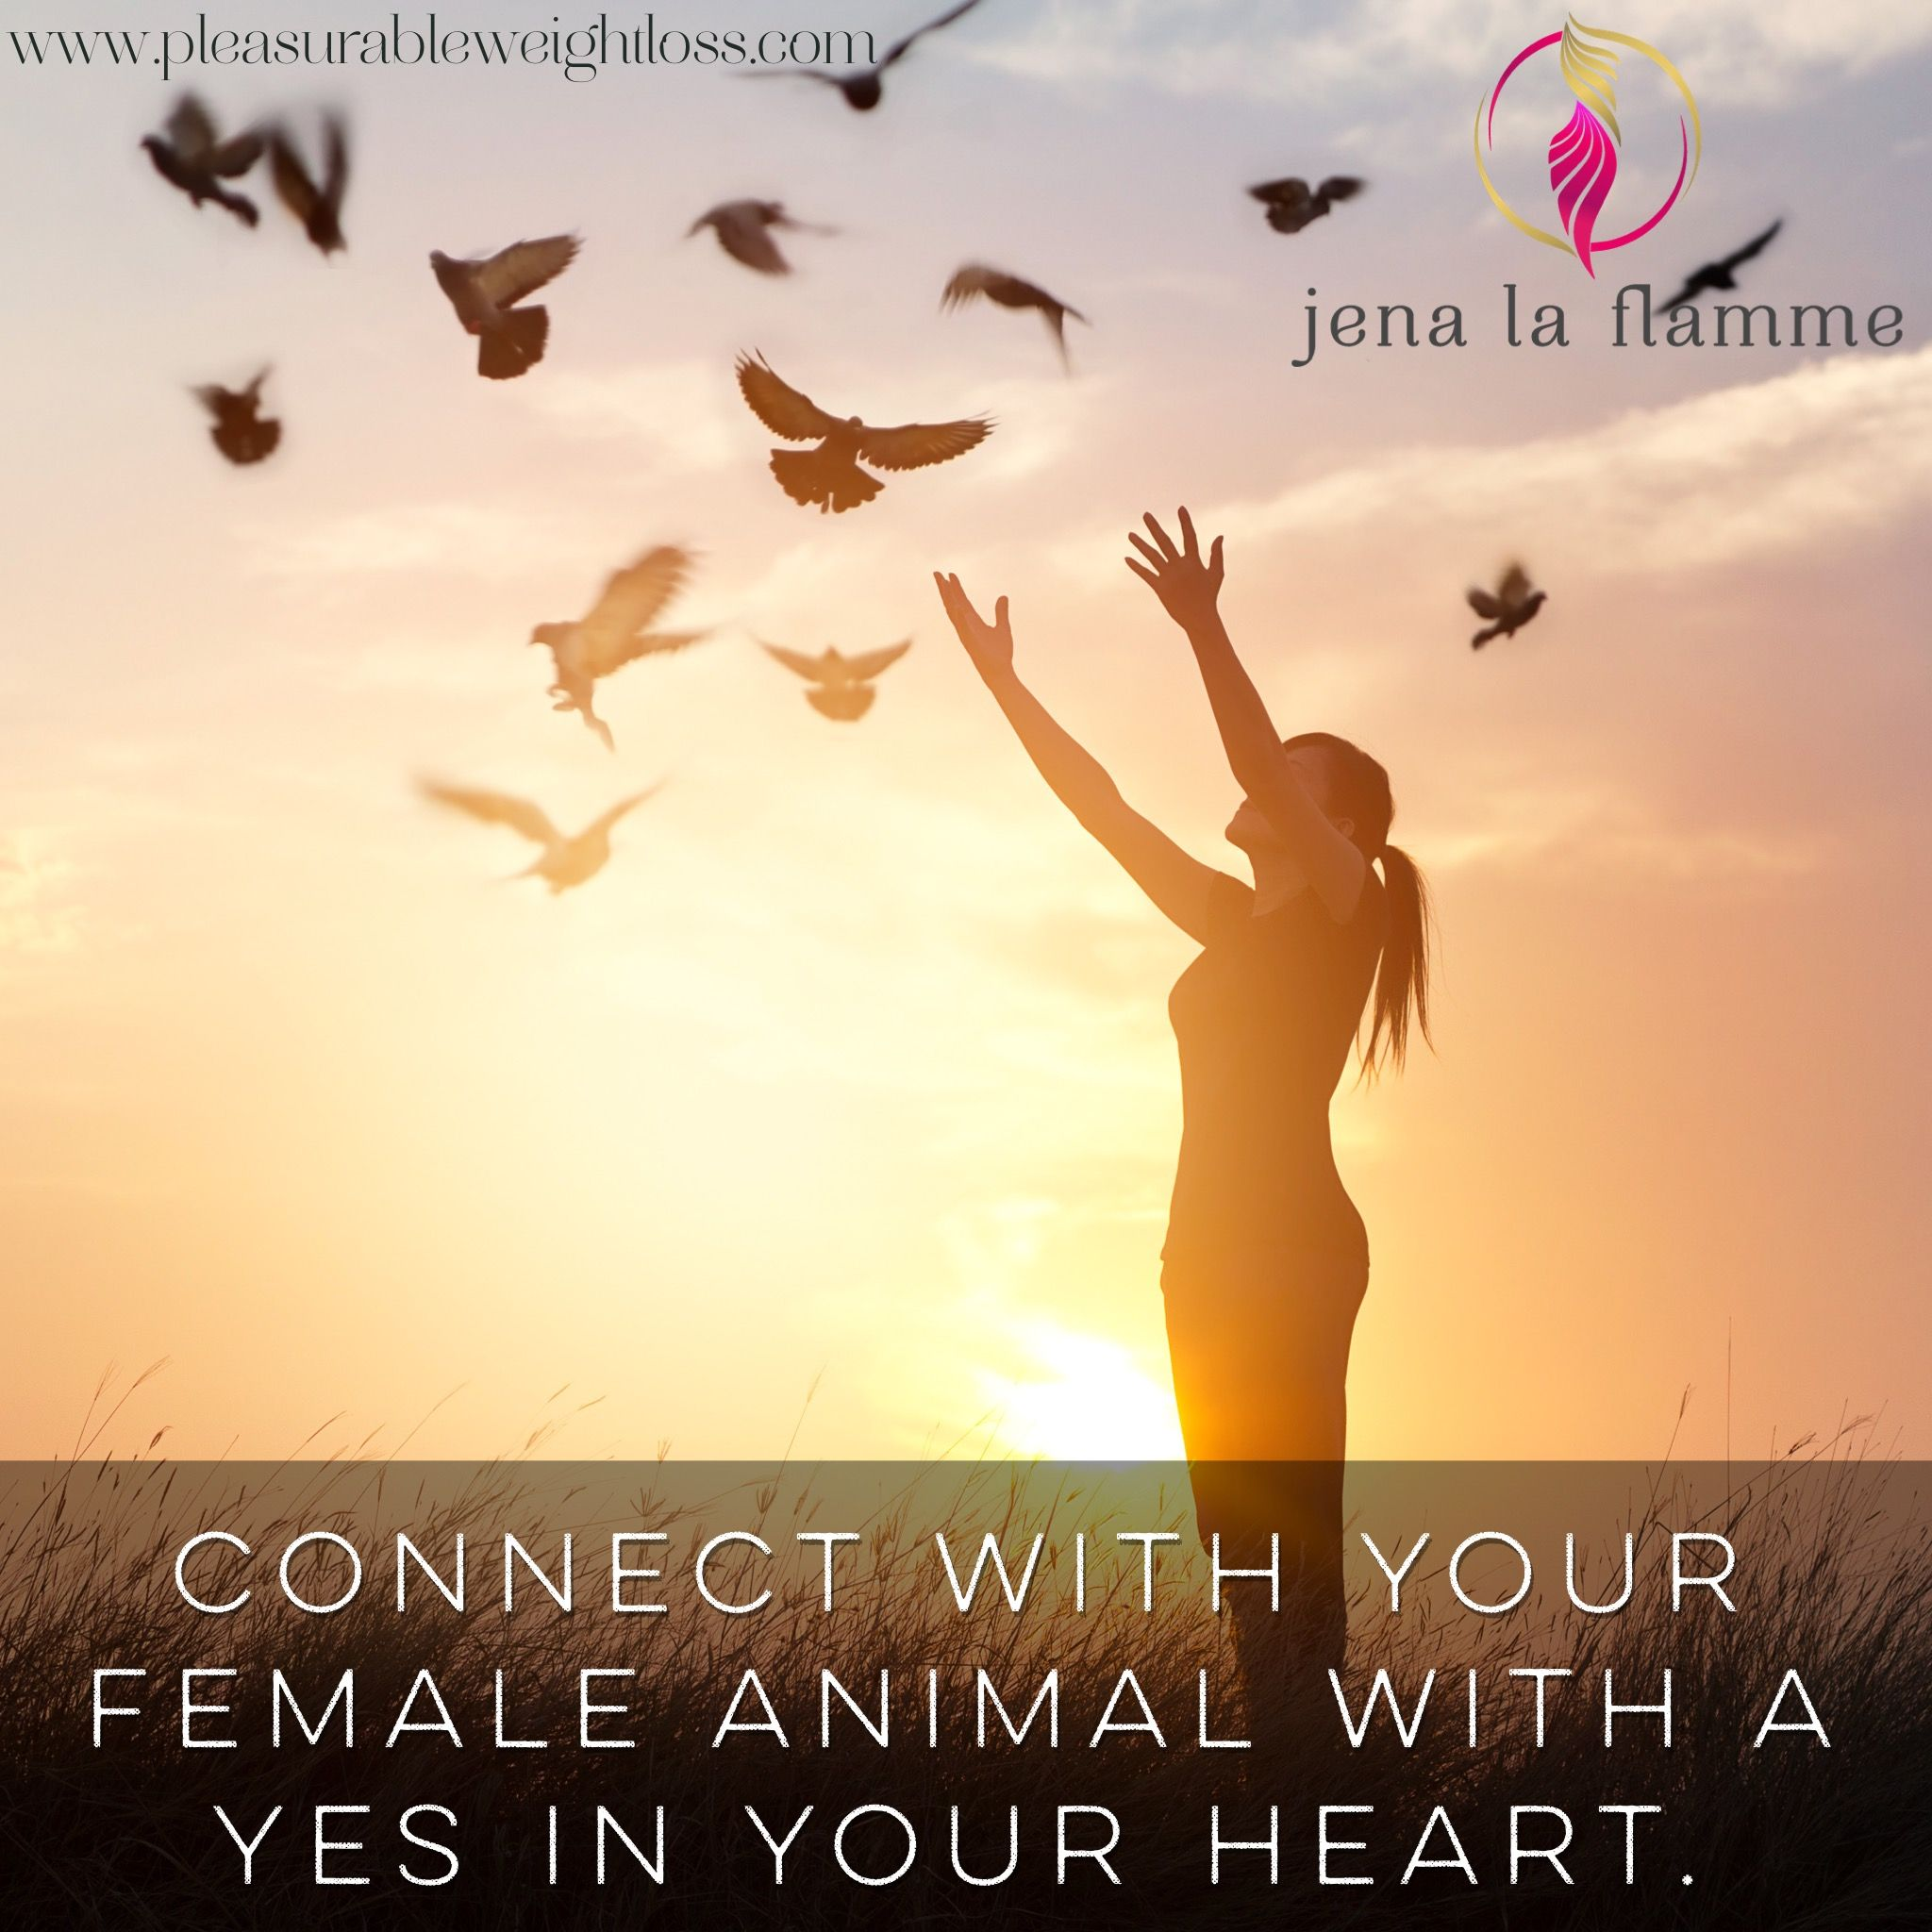 Connect with your female animal with a yes in your heart.  #jenalaflamme #pleasurableweightloss #pleasurerevolution